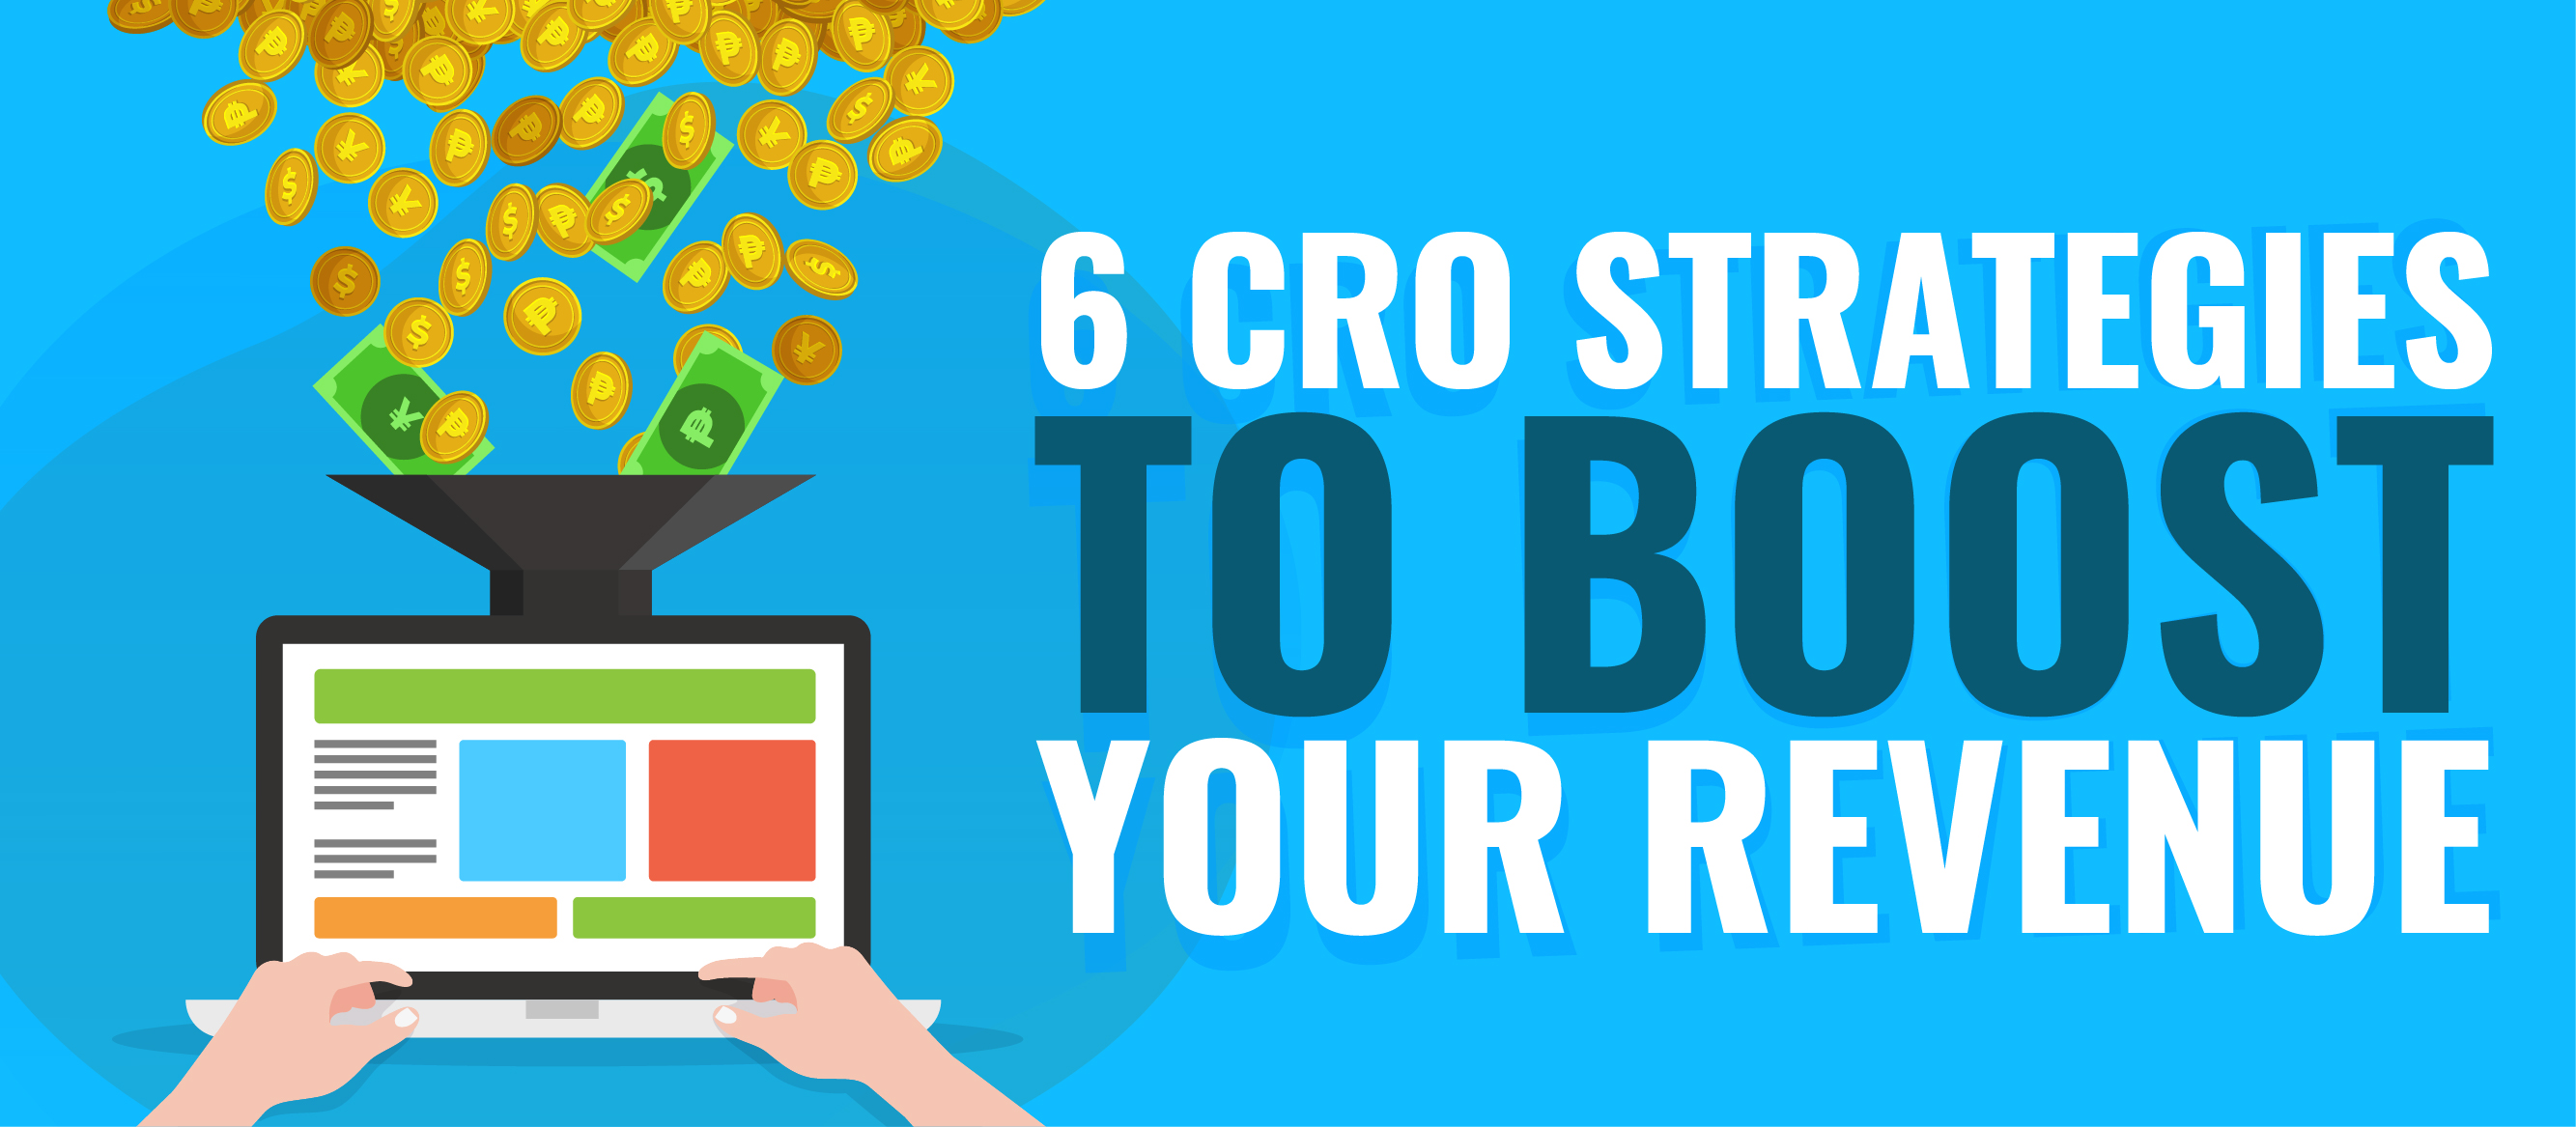 6 CRO Strategies to Boost Your Revenue